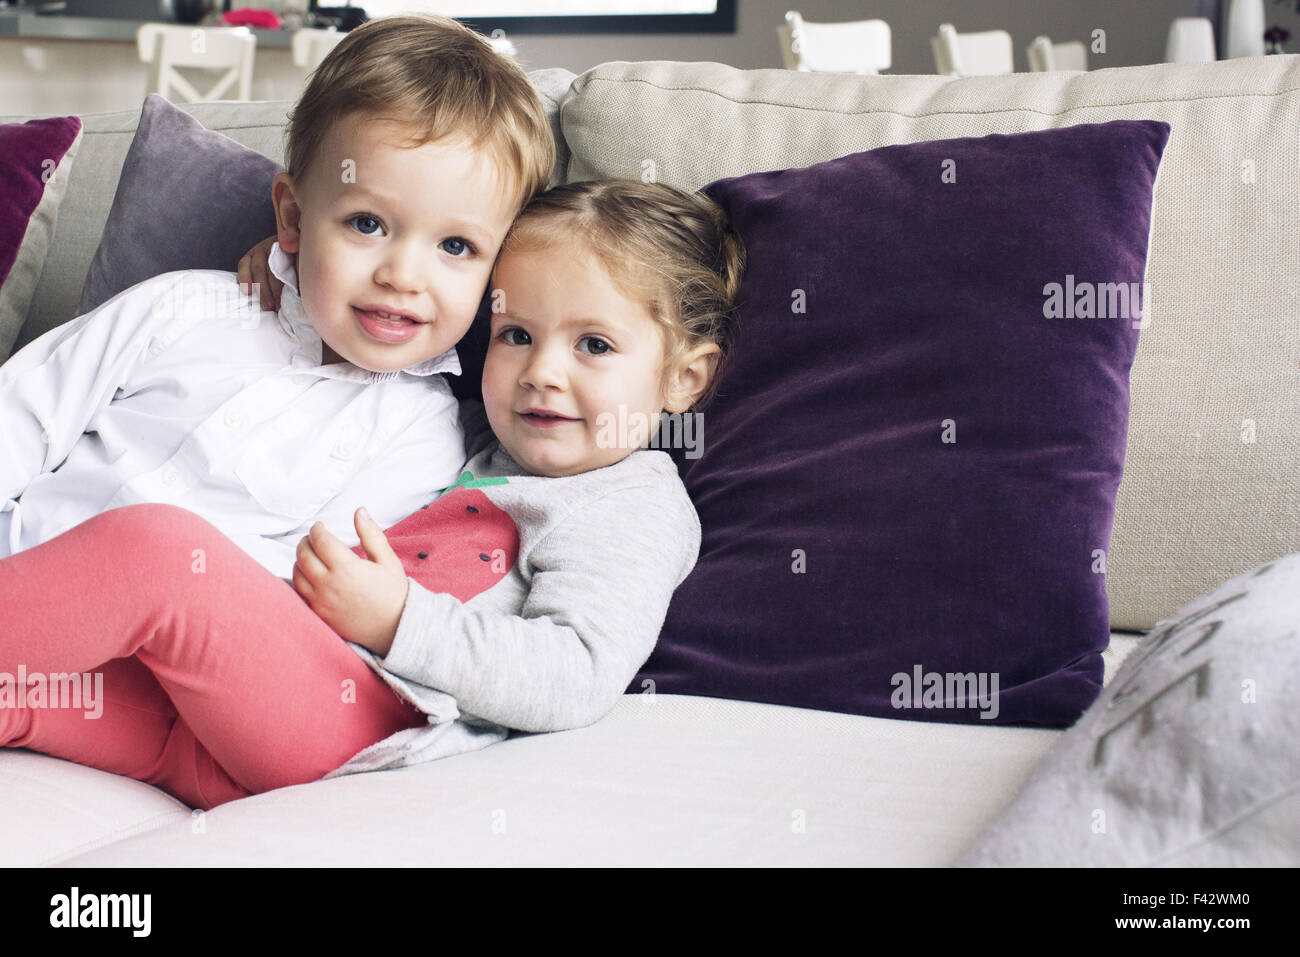 Young siblings sitting together on sofa, portrait Stock Photo